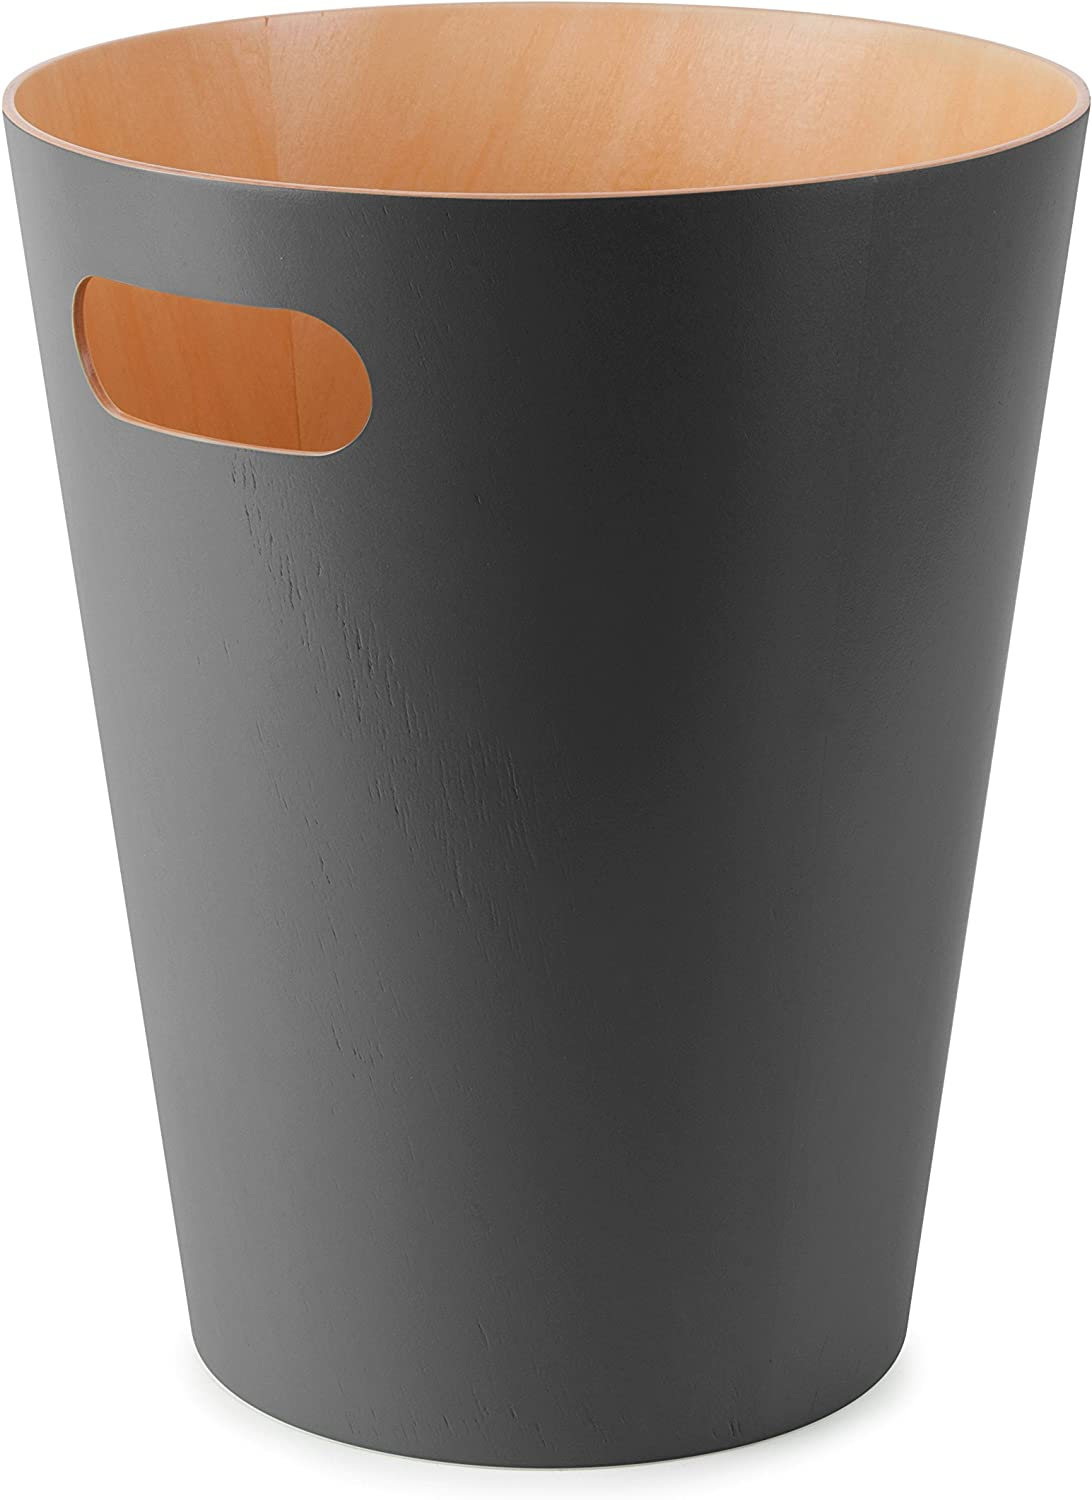 Umbra, Charcoal Woodrow, 2 Gallon Modern Wooden Trash Can Wastebasket or Recycling Bin for Home or Office